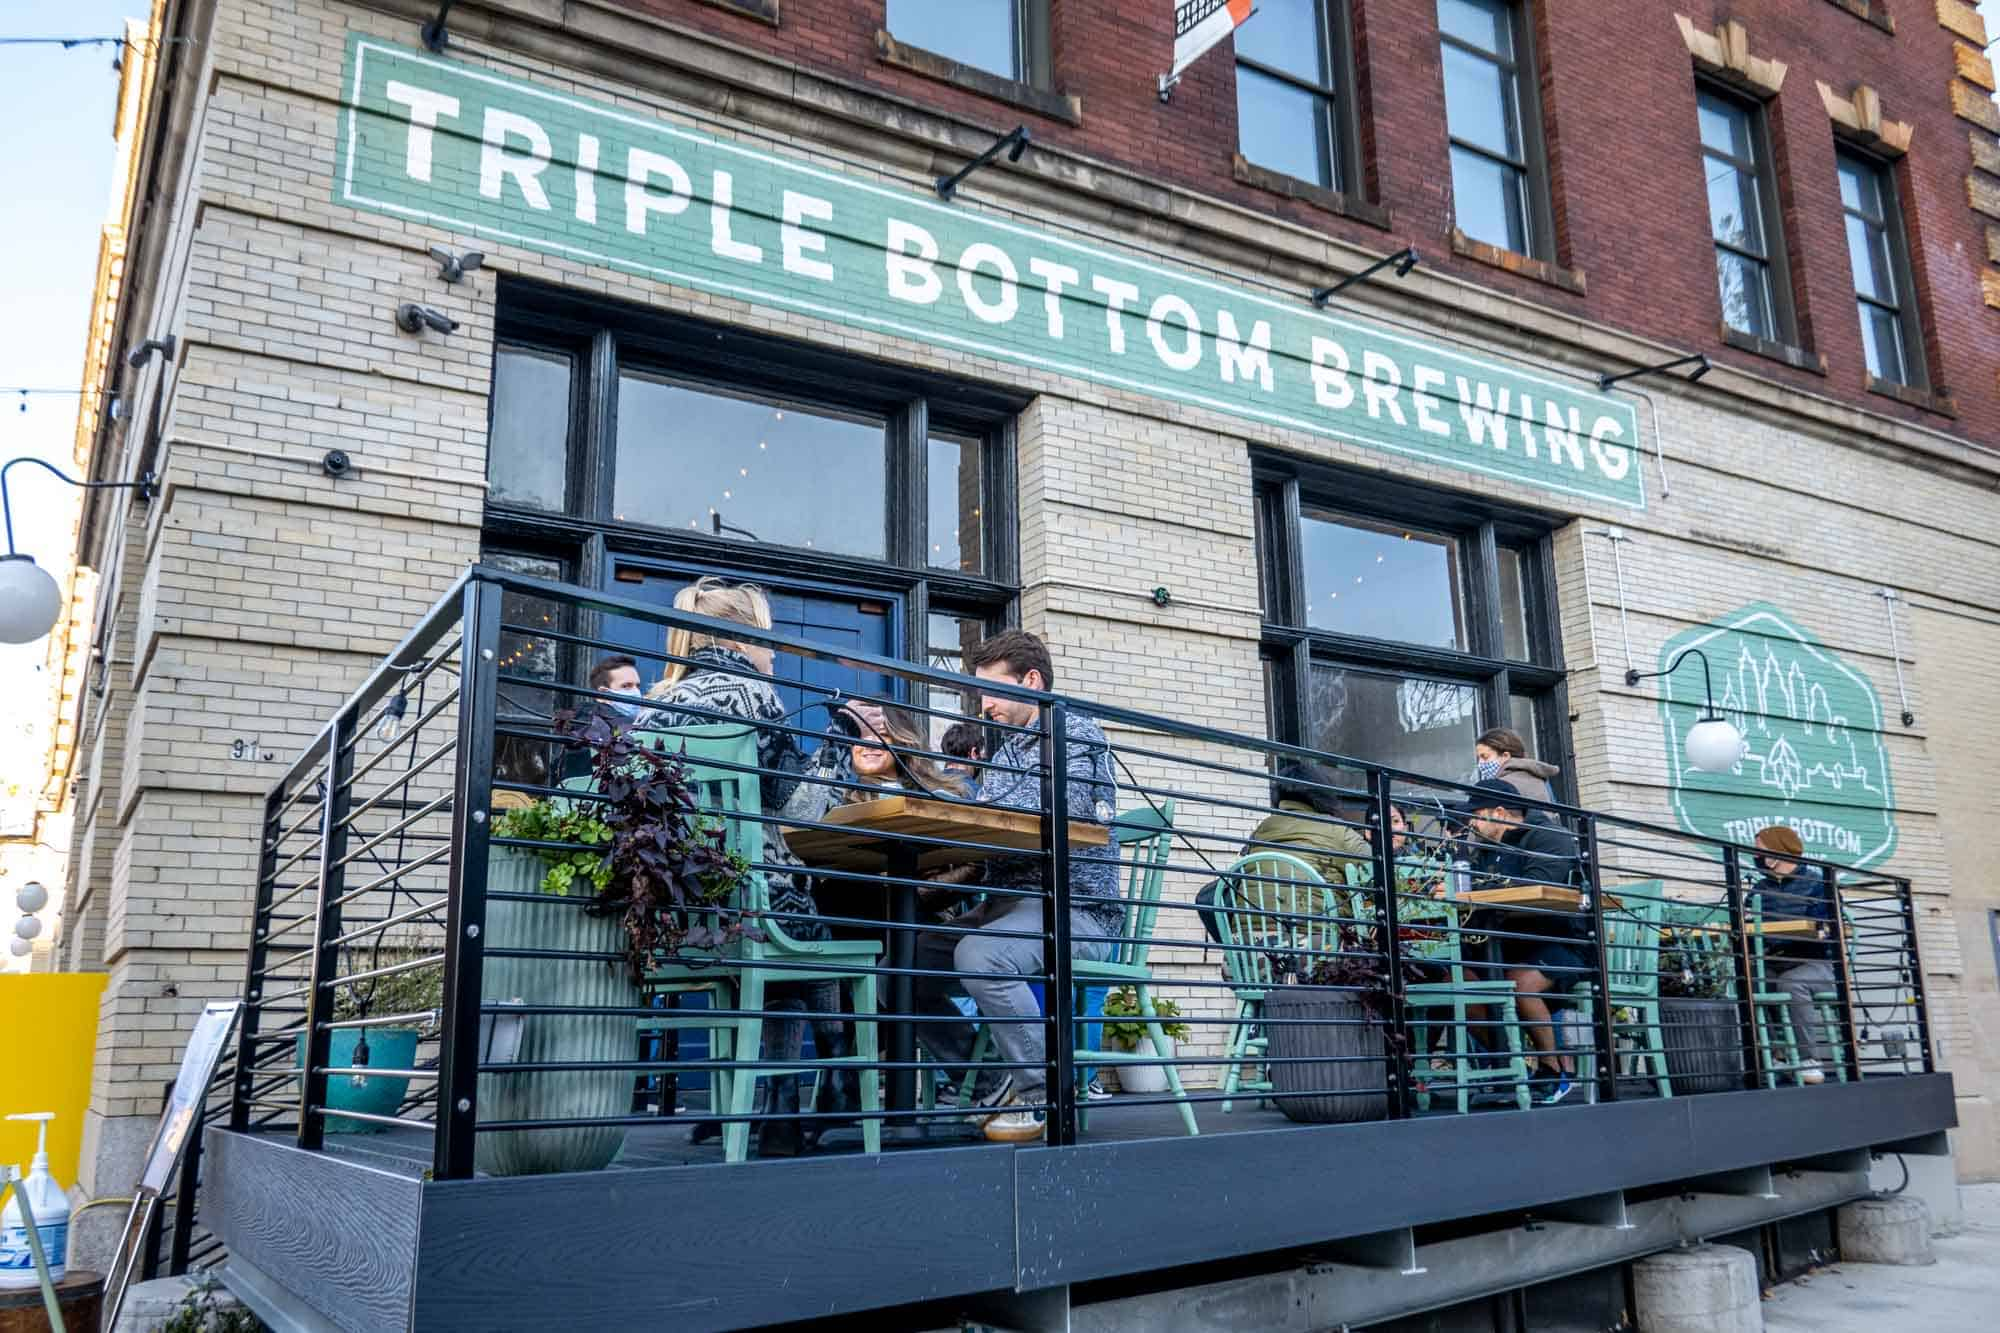 Exterior of Triple Bottom Brewing